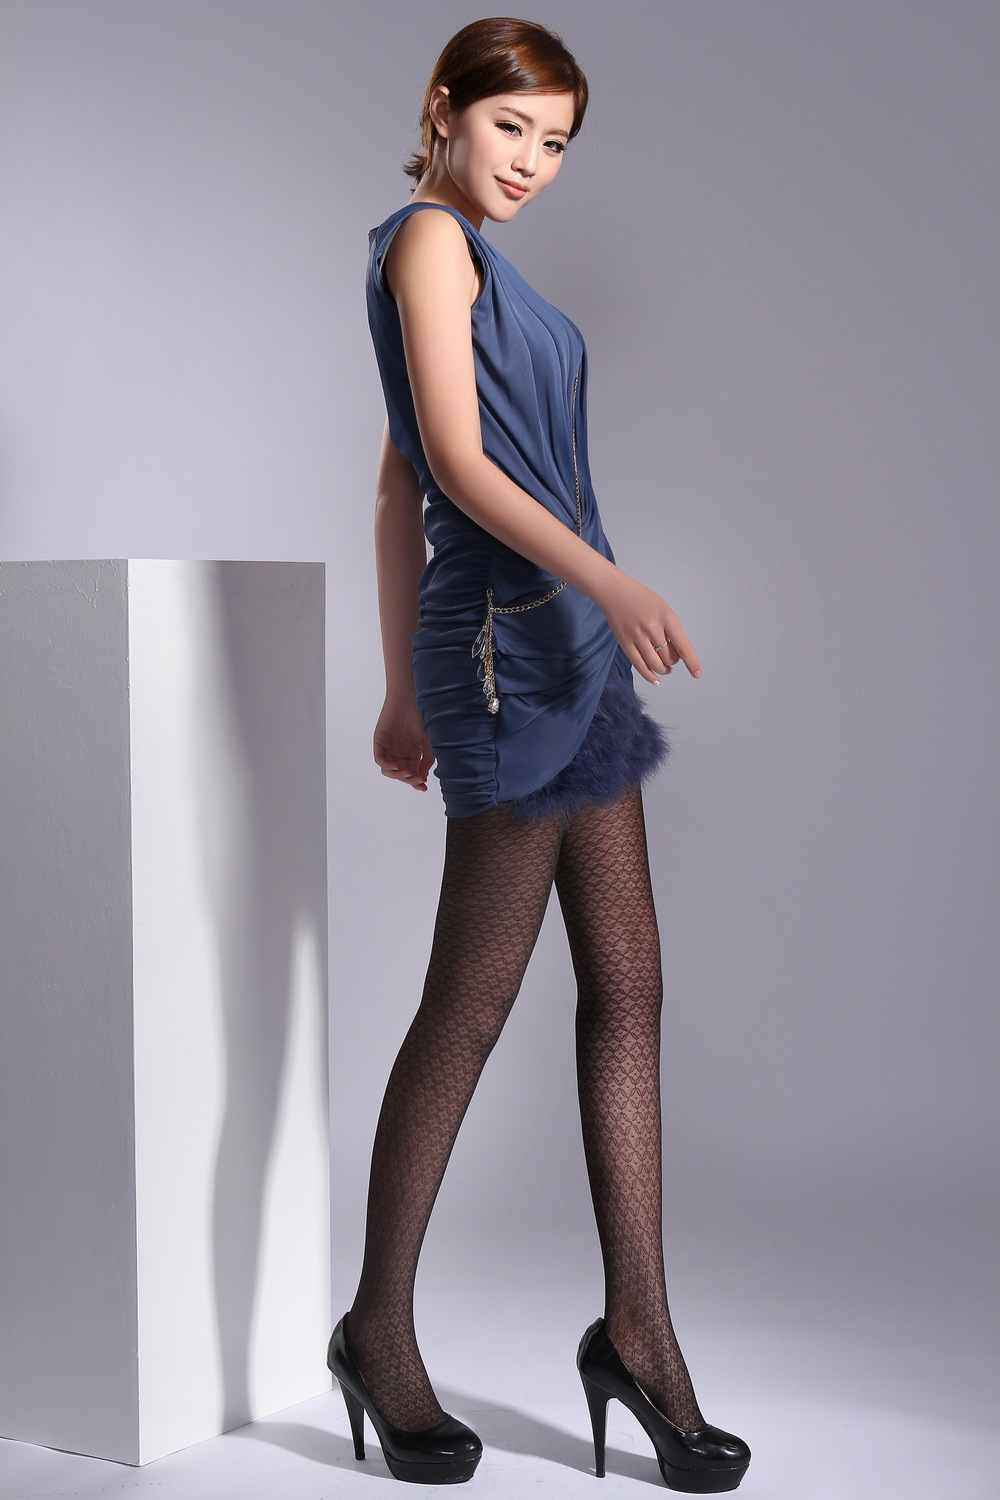 Gooooostooooosaaaaaaa pantyhose fashion photography